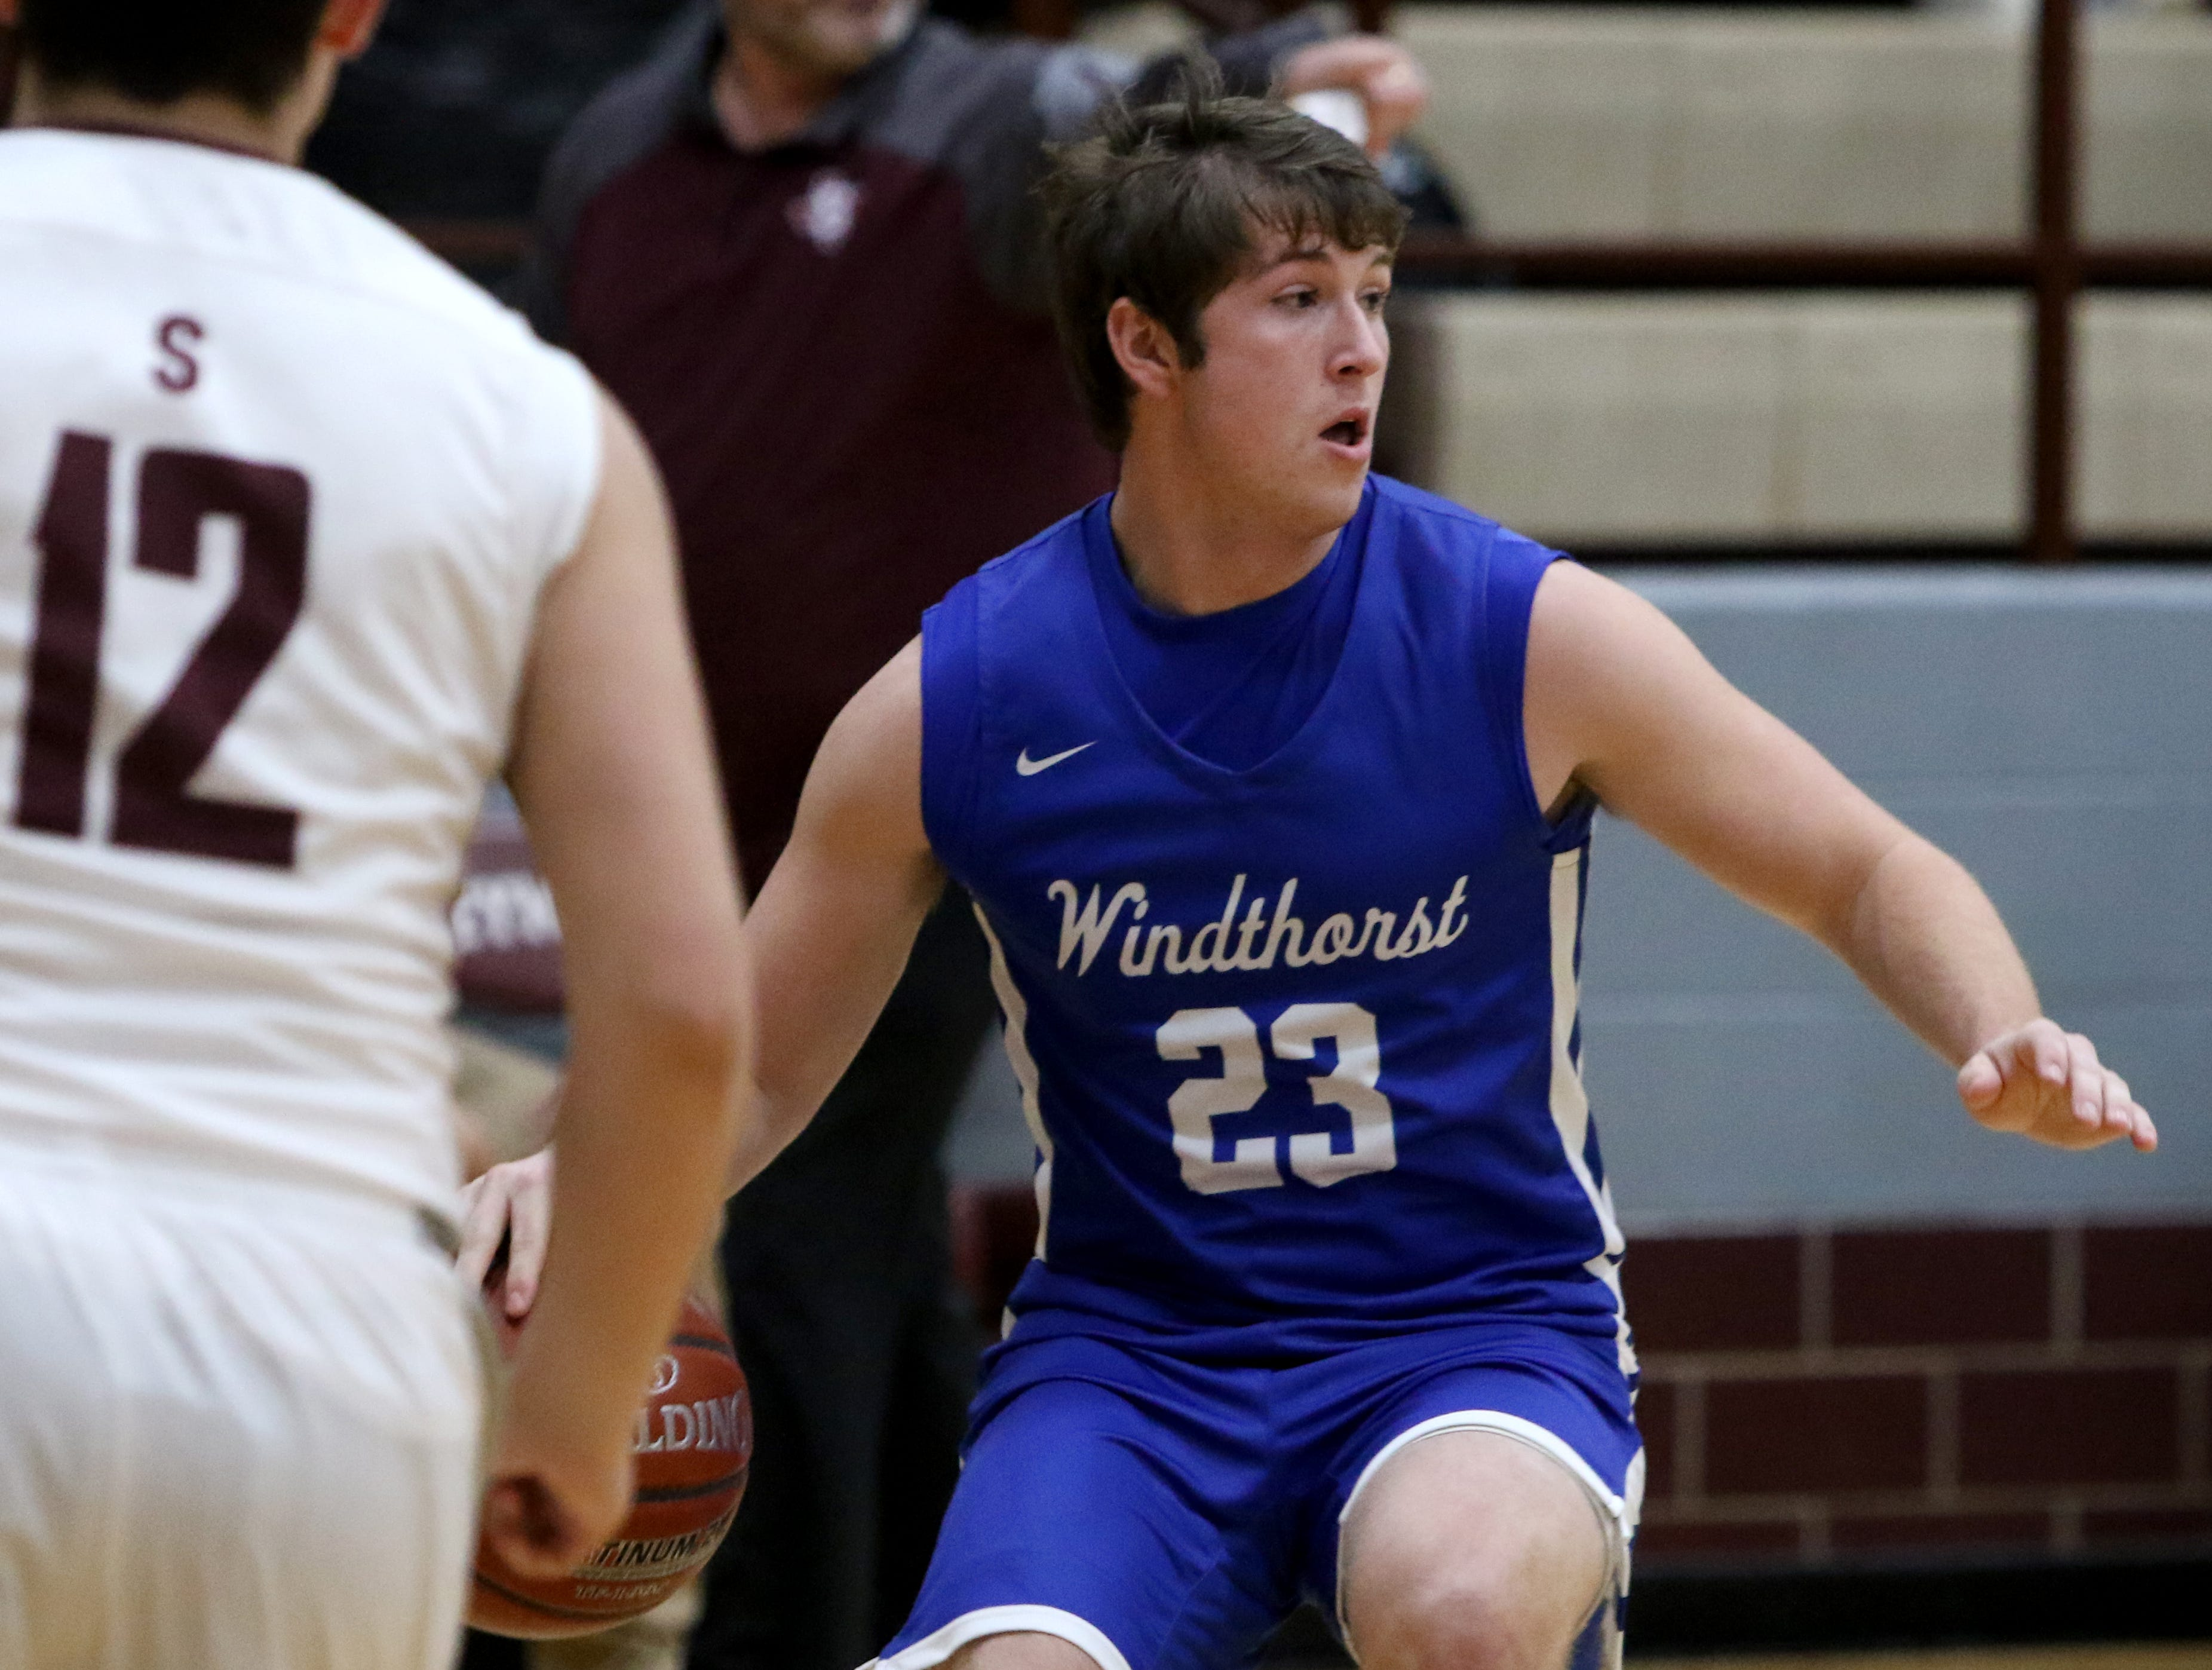 Windthorst's Nathan Bales dribbles in the game against Seymour Tuesday, Jan. 8, 2019, in Seymour.